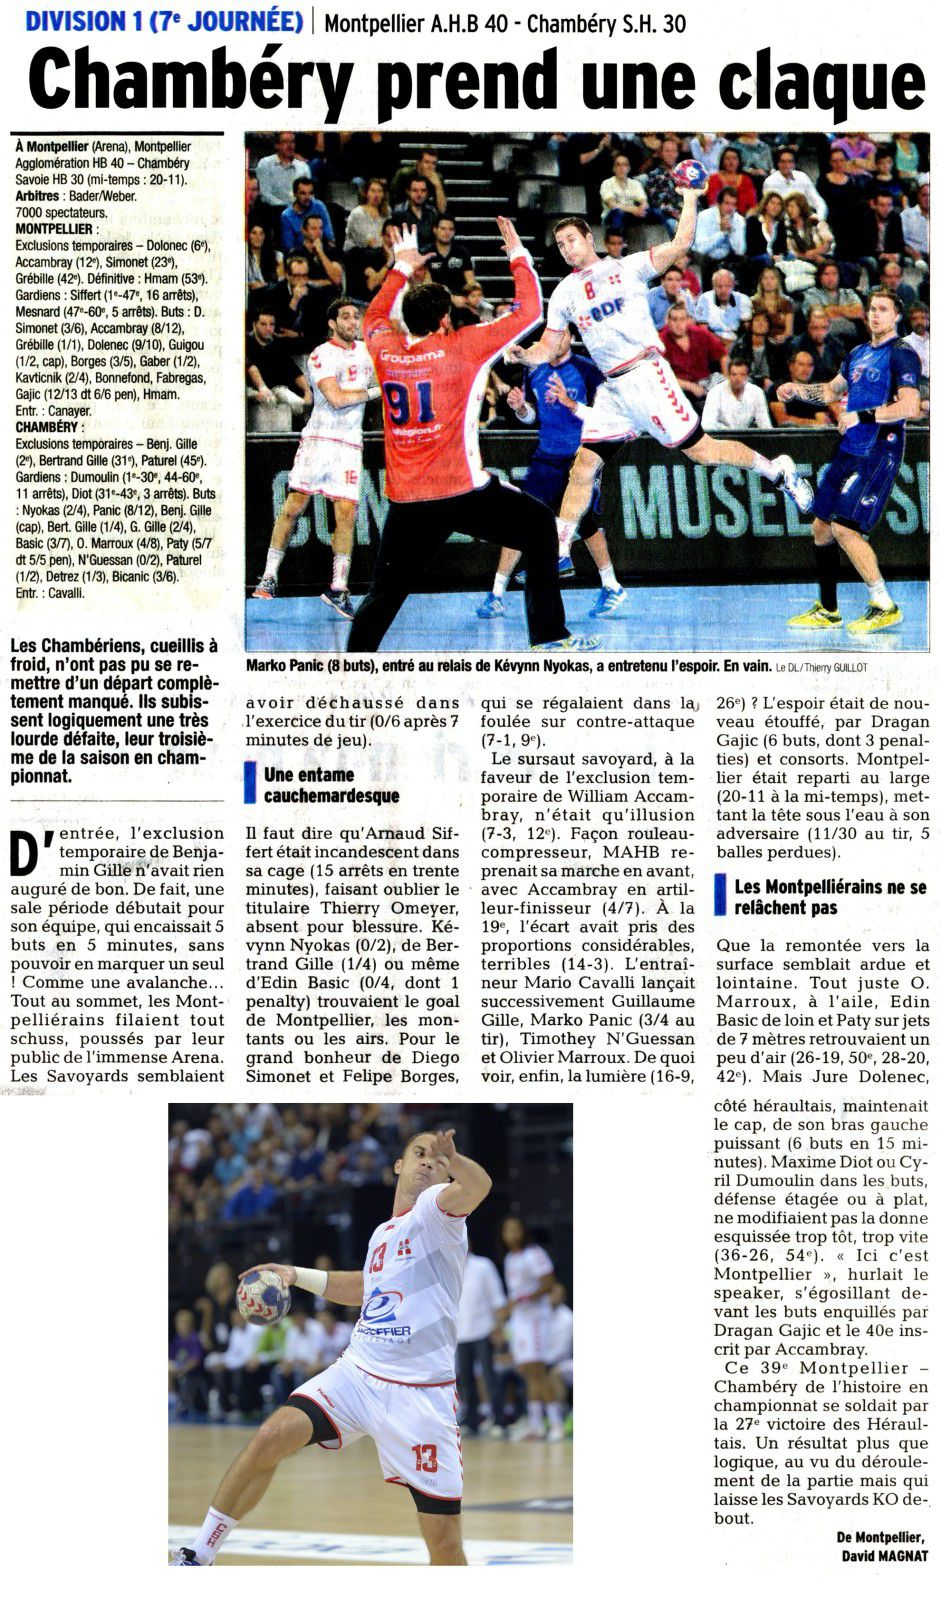 Article-D1-MONTPELLIER--CHAMBERY-24-10-2013-Pour-le-site.jpg